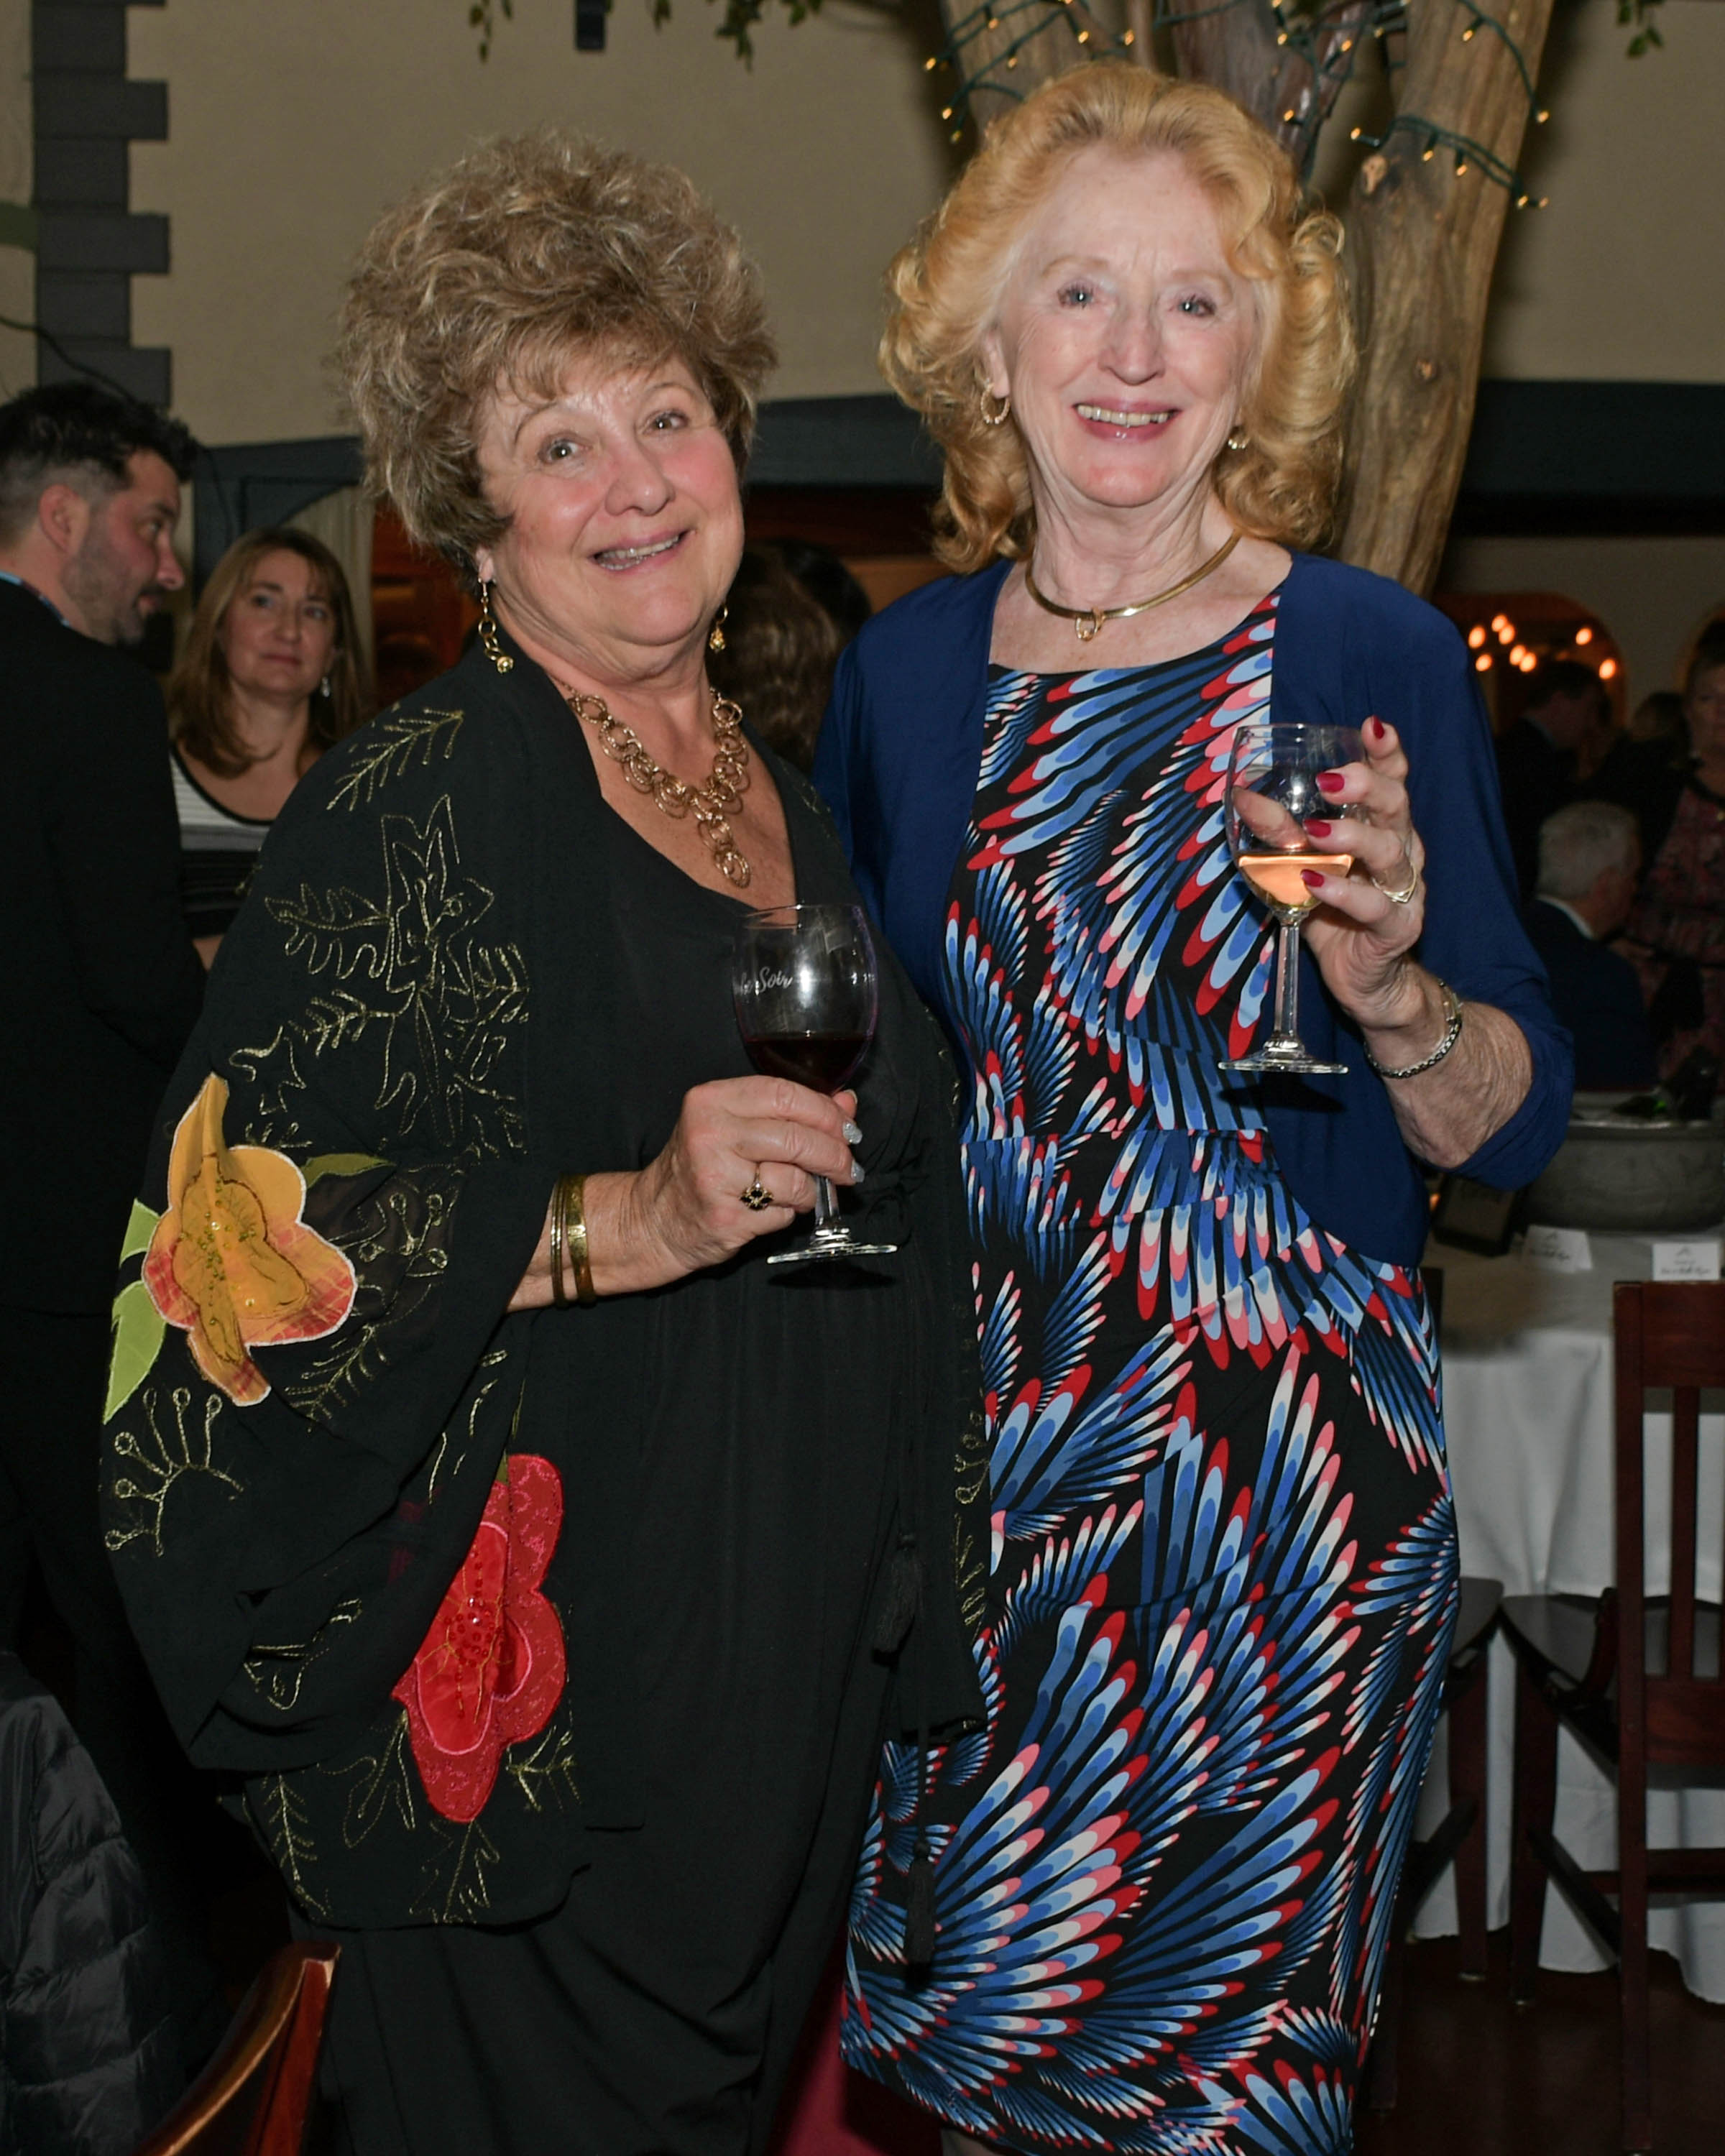 Vin Le Soir to benefit AIM Services, Inc. two women with wine at the event